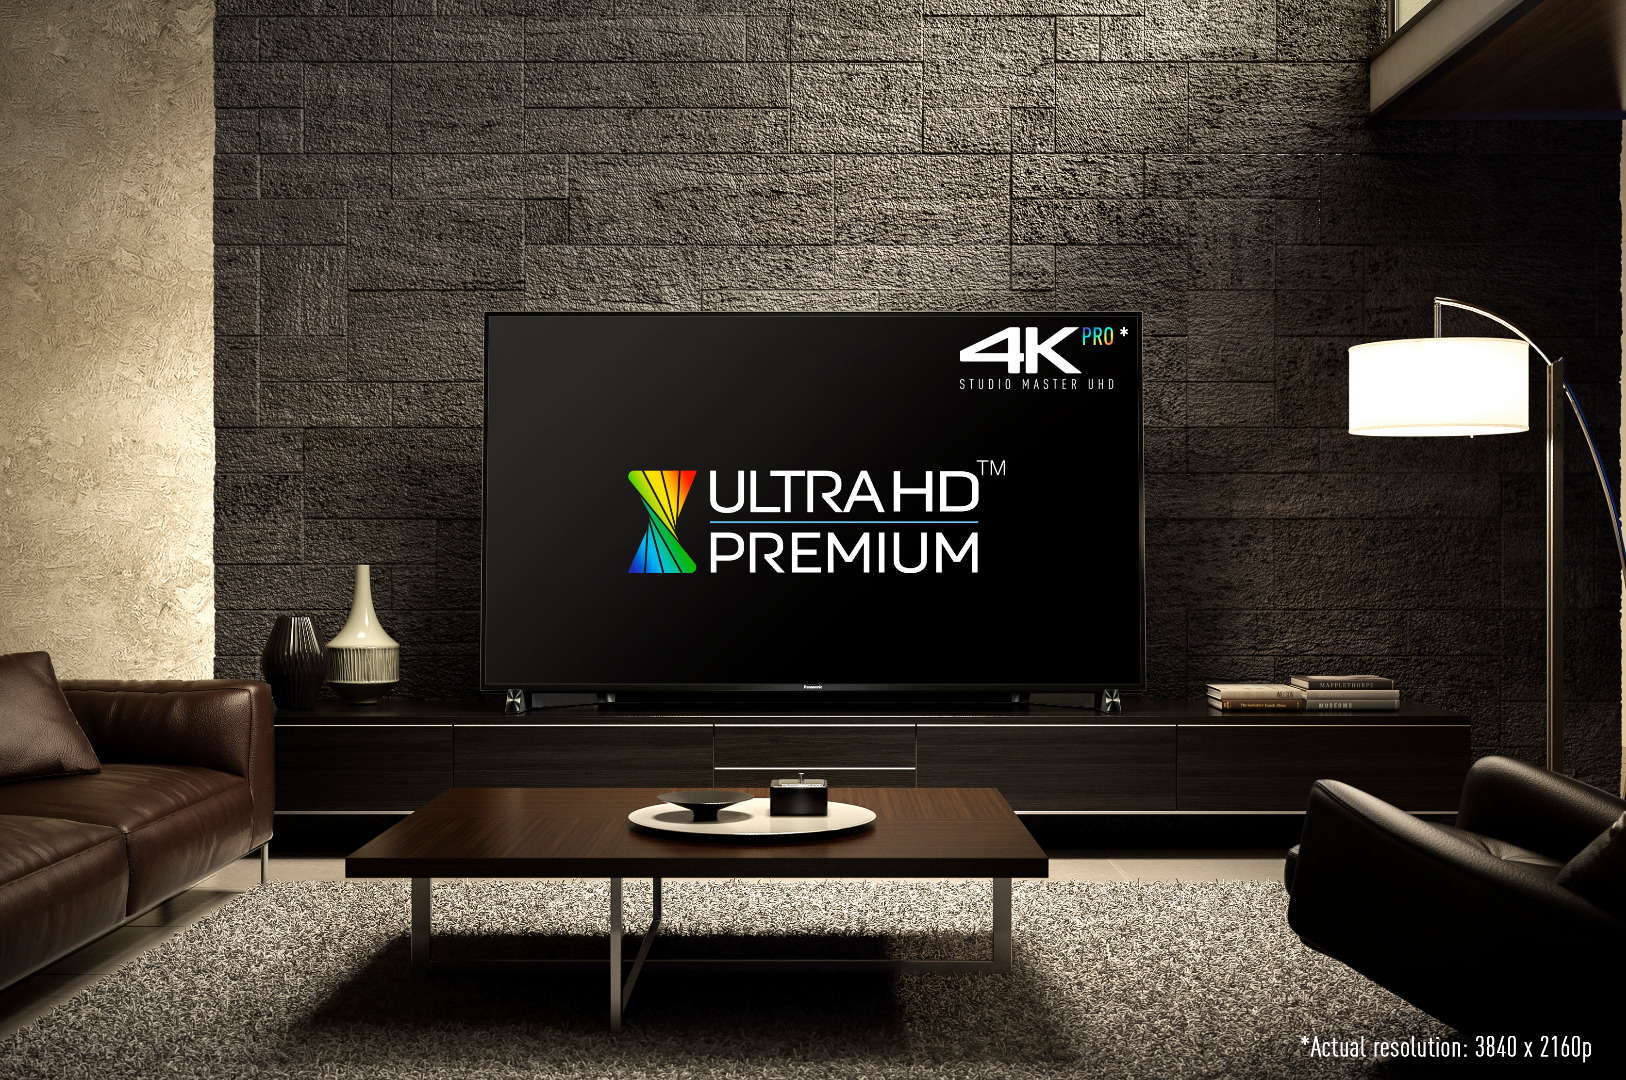 What Can I Watch On My 4K TV?